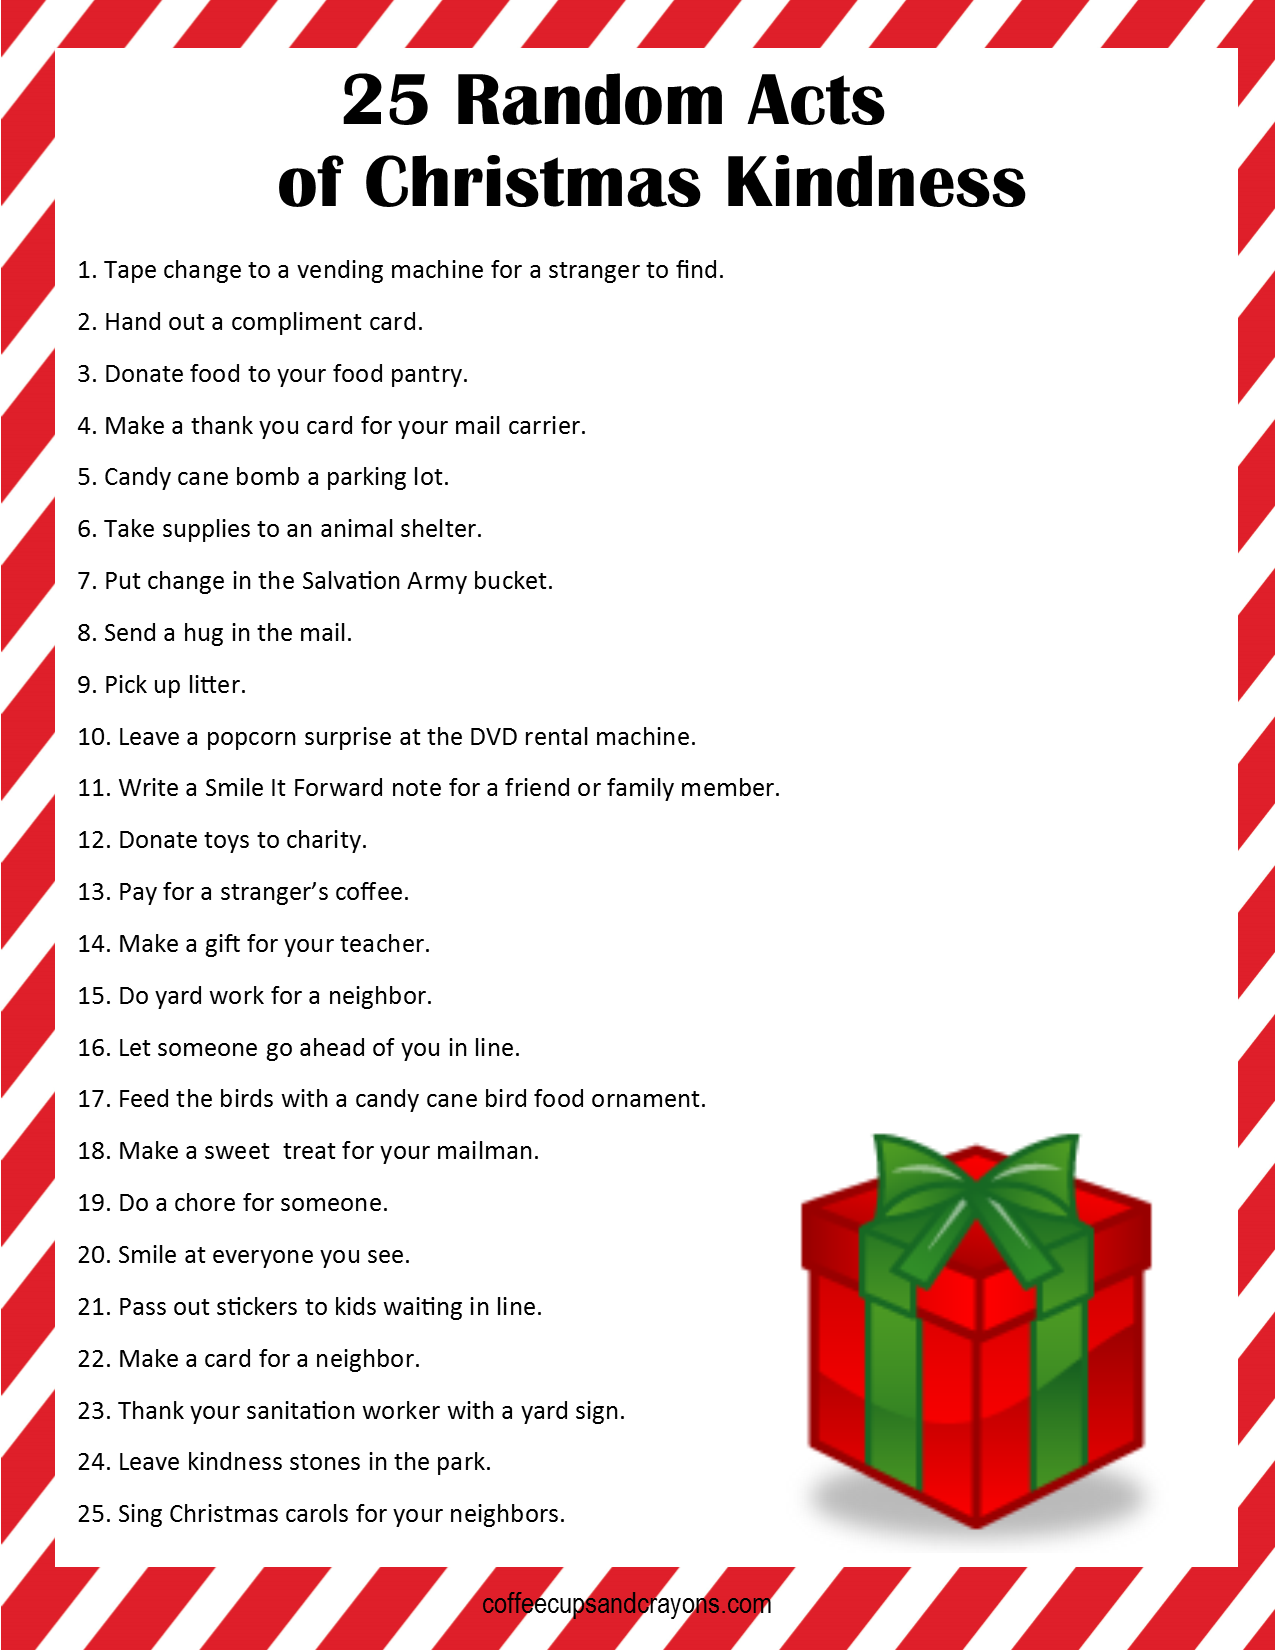 25 Random Acts of Christmas Kindness - Kids Activities Blog